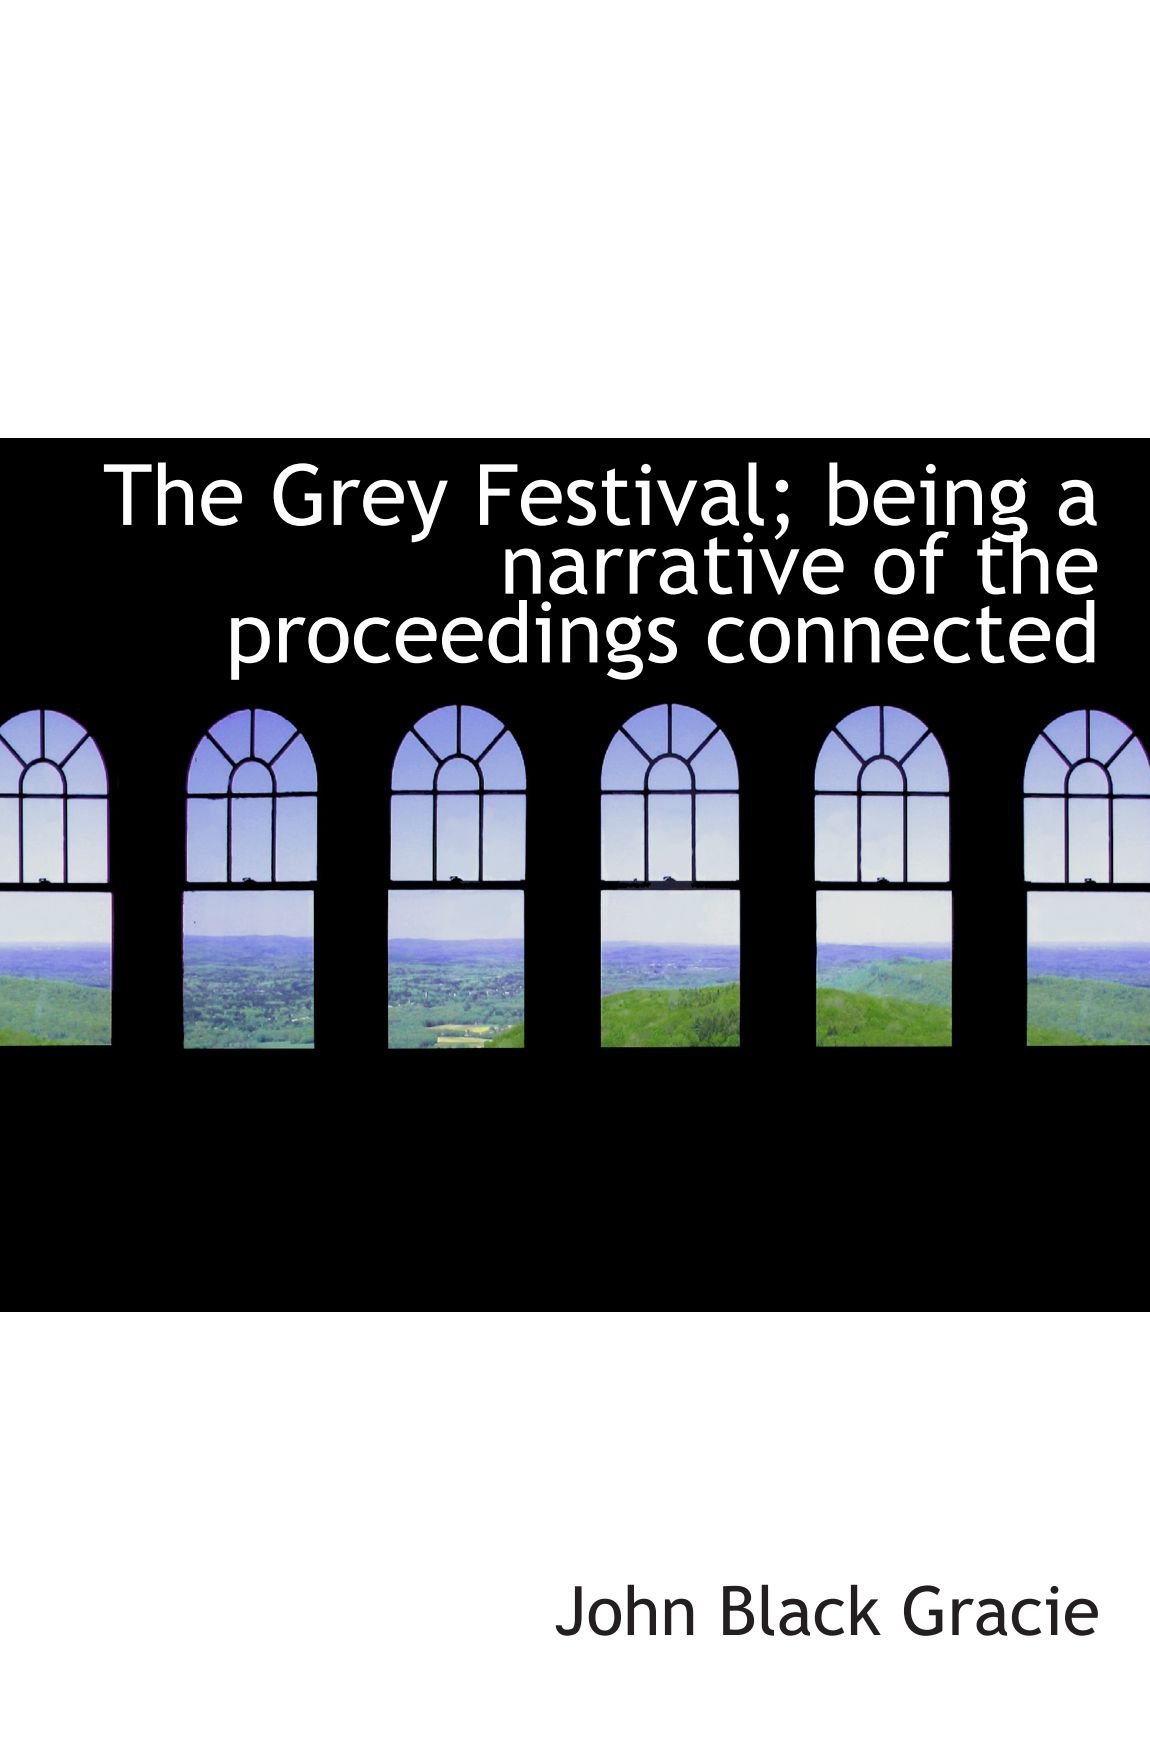 The Grey Festival; being a narrative of the proceedings connected ebook